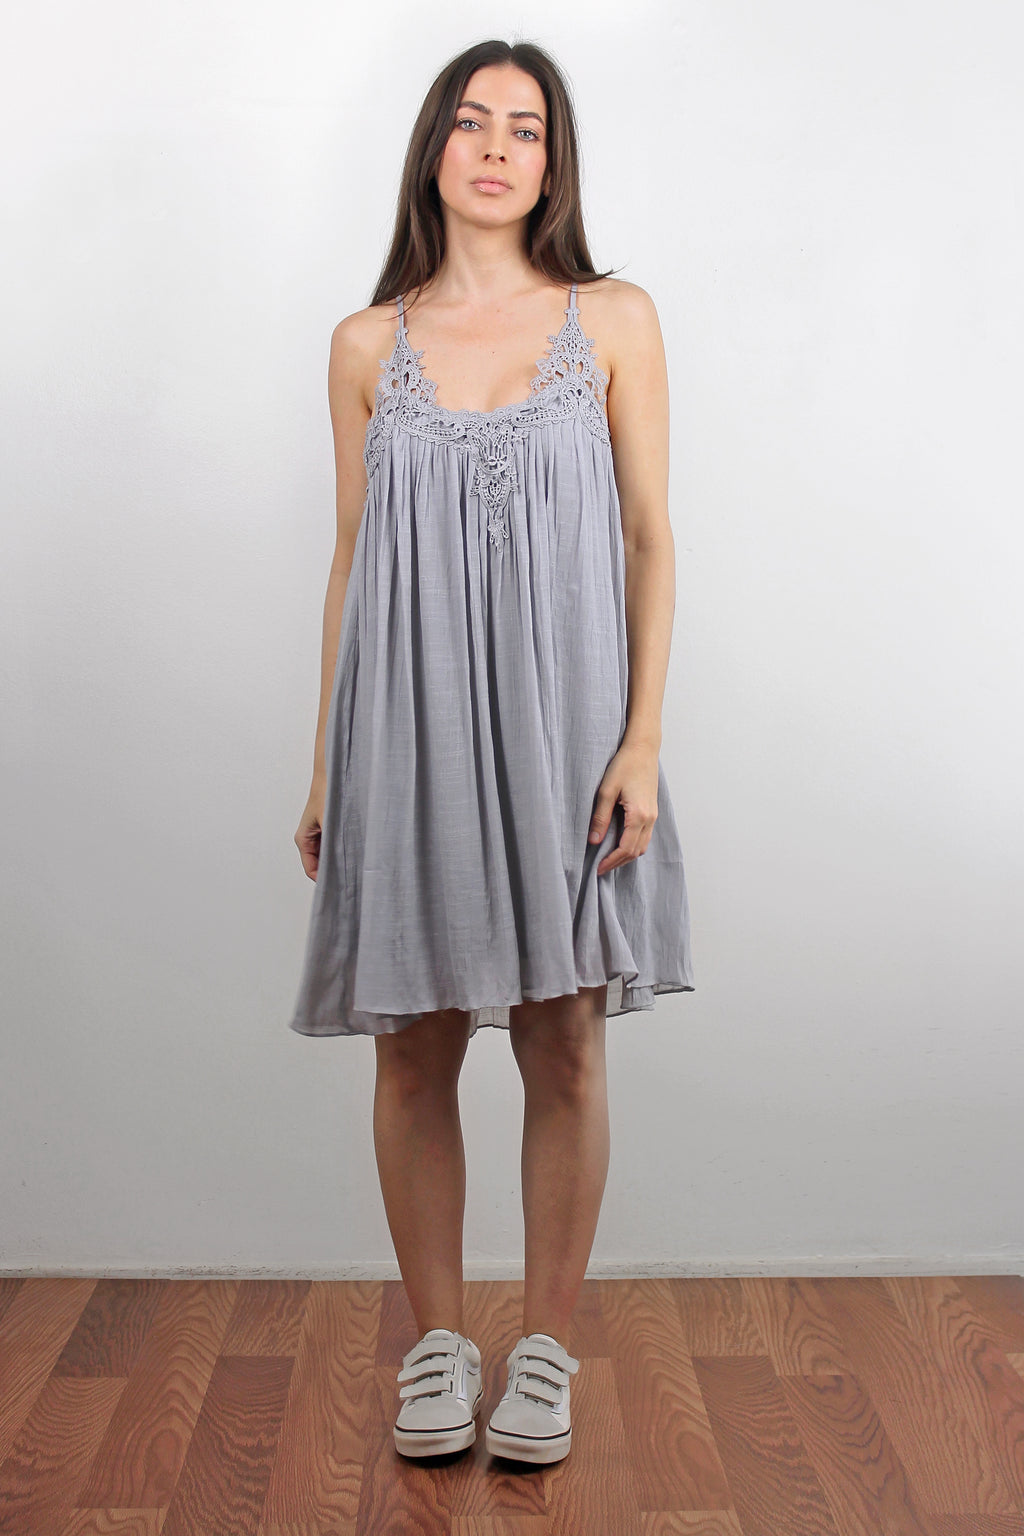 Lace inset dress, in Silver.